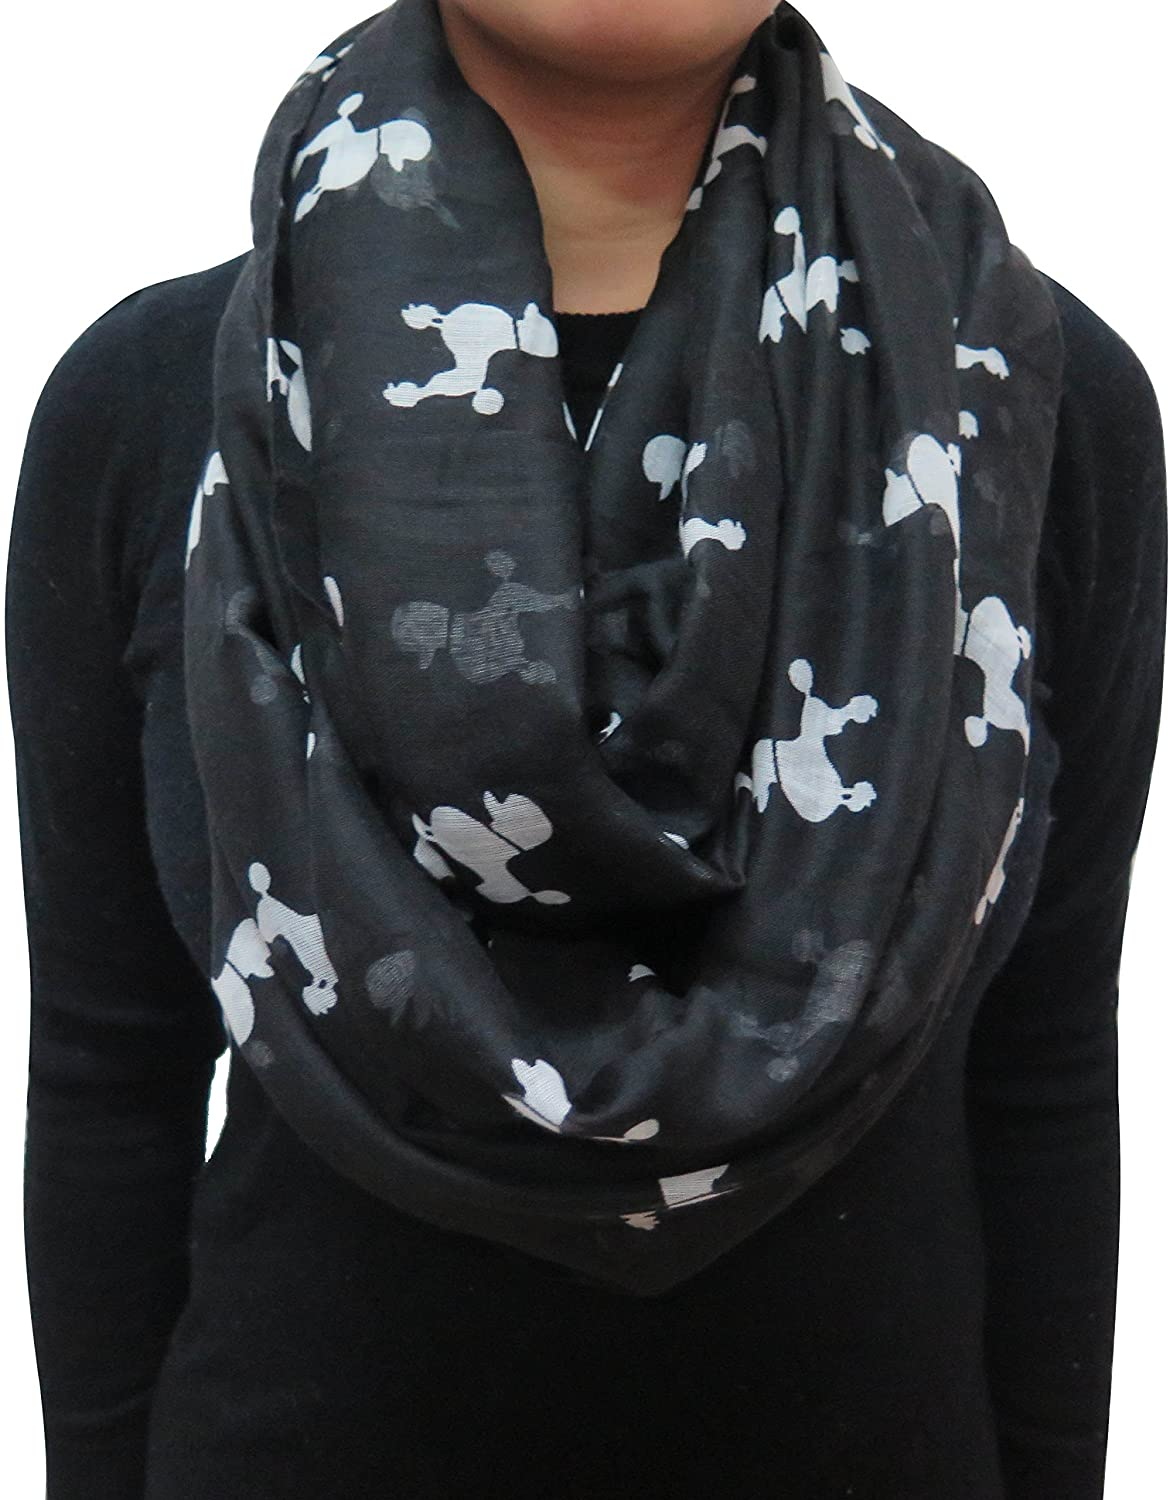 Lina & Lily Poodle Dog Print Women's Infinity Scarf Lightweight